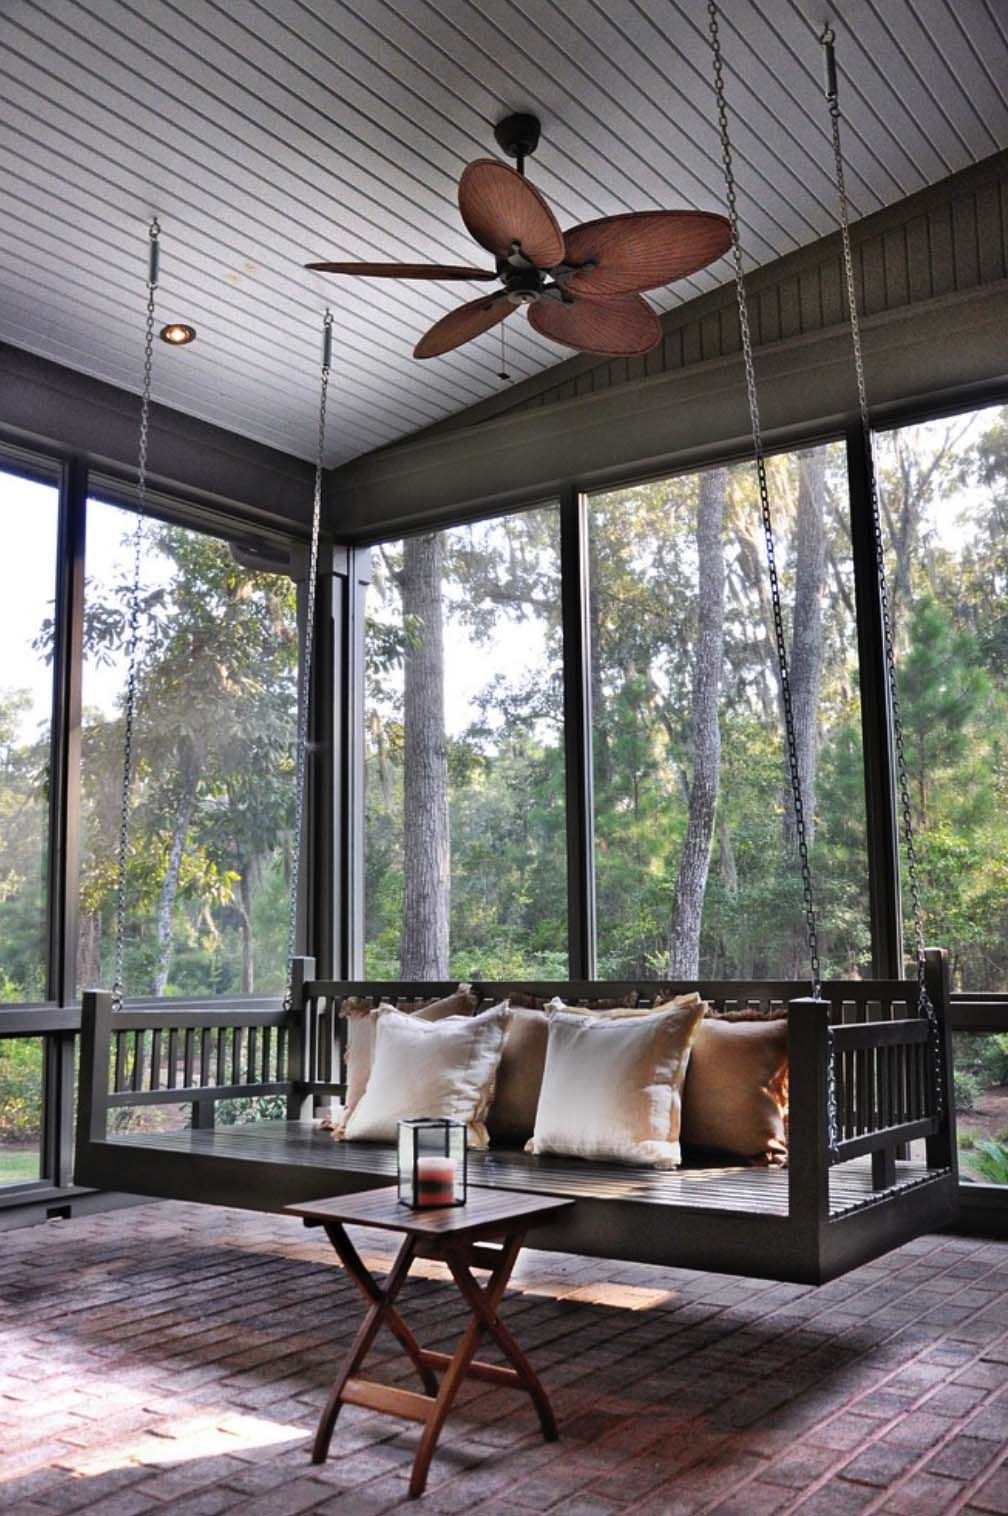 38 Amazingly cozy and relaxing screened porch design ideas | Pinterest